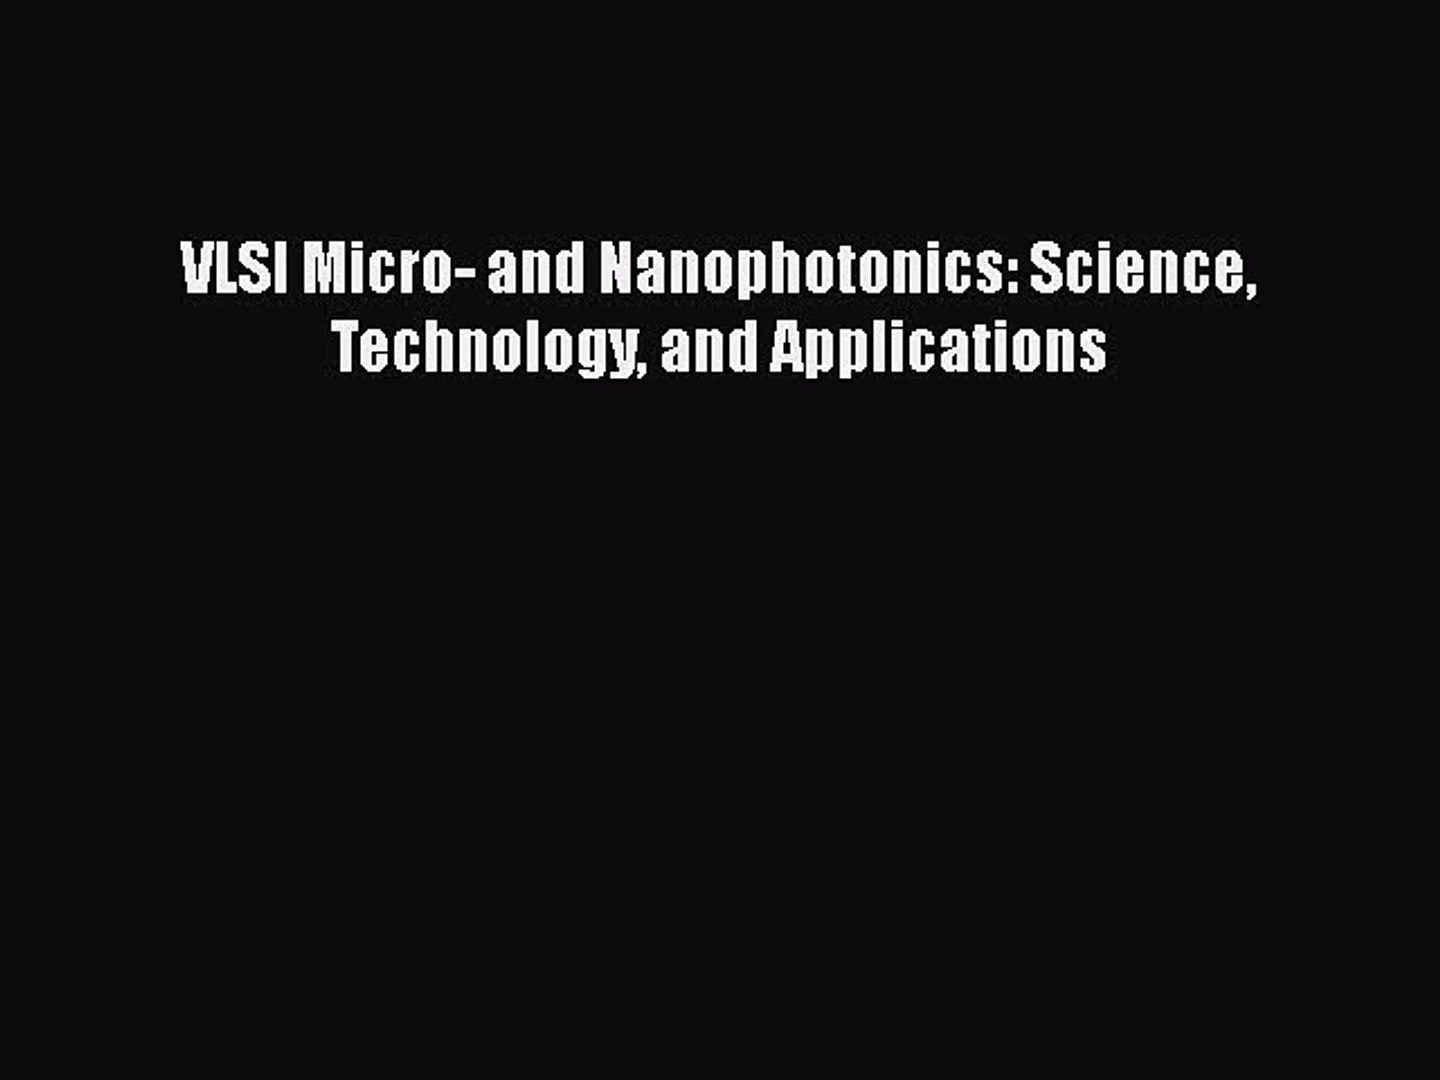 and Applications VLSI Micro and Nanophotonics Science Technology